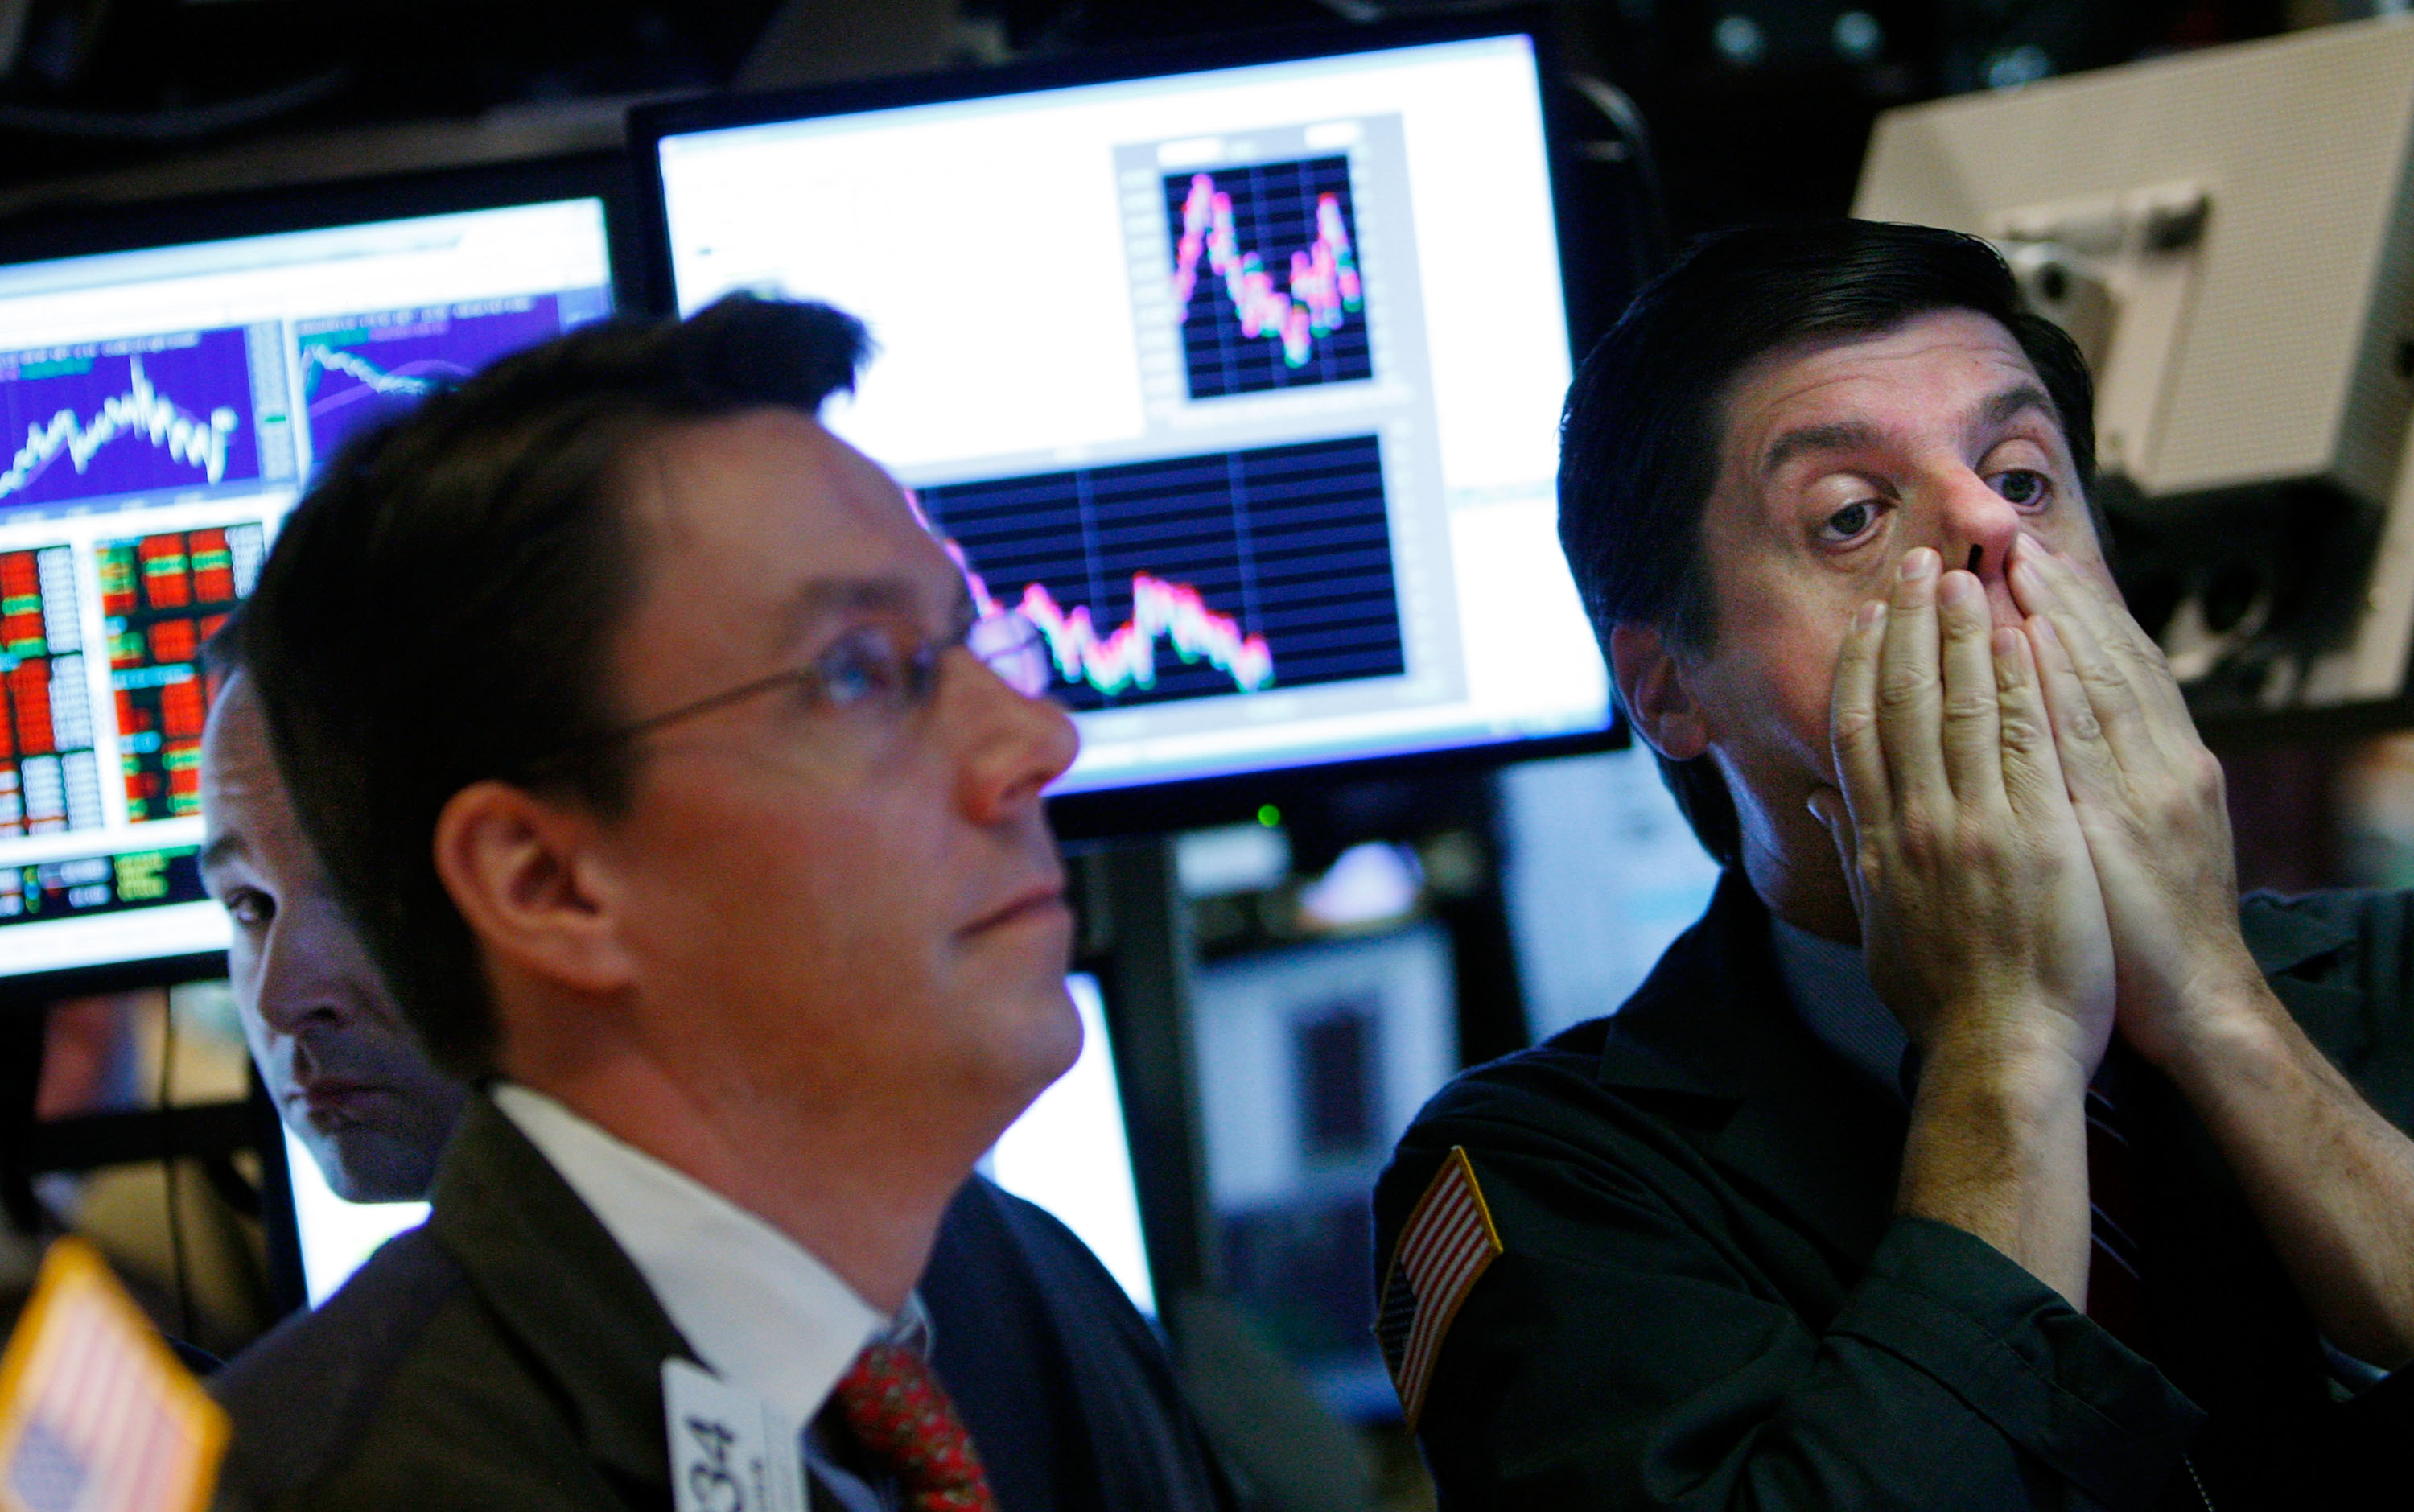 Dow plunges into bear market as selling accelerates